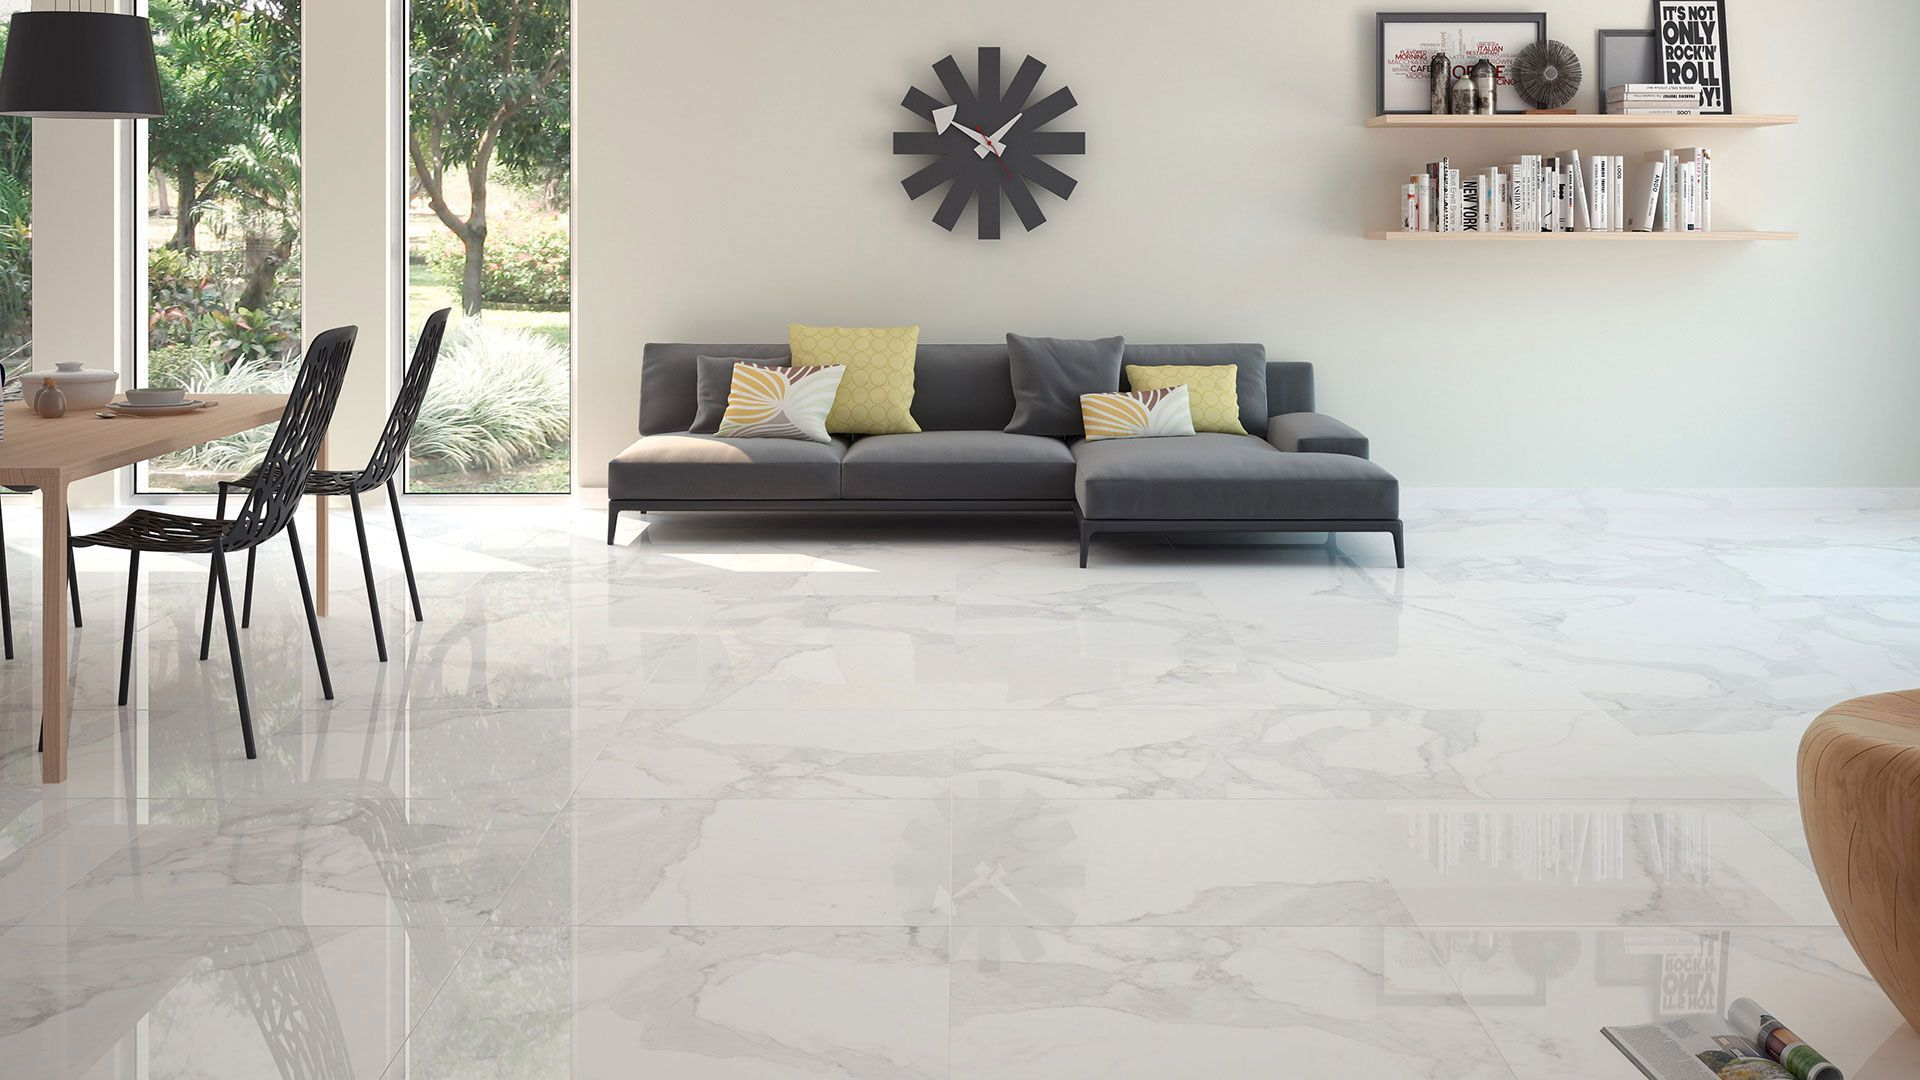 new introduced on series images flooring recently winter with olympiatile tile a best tiles floors of ceramica spain pinterest porcelain from an eterna stn